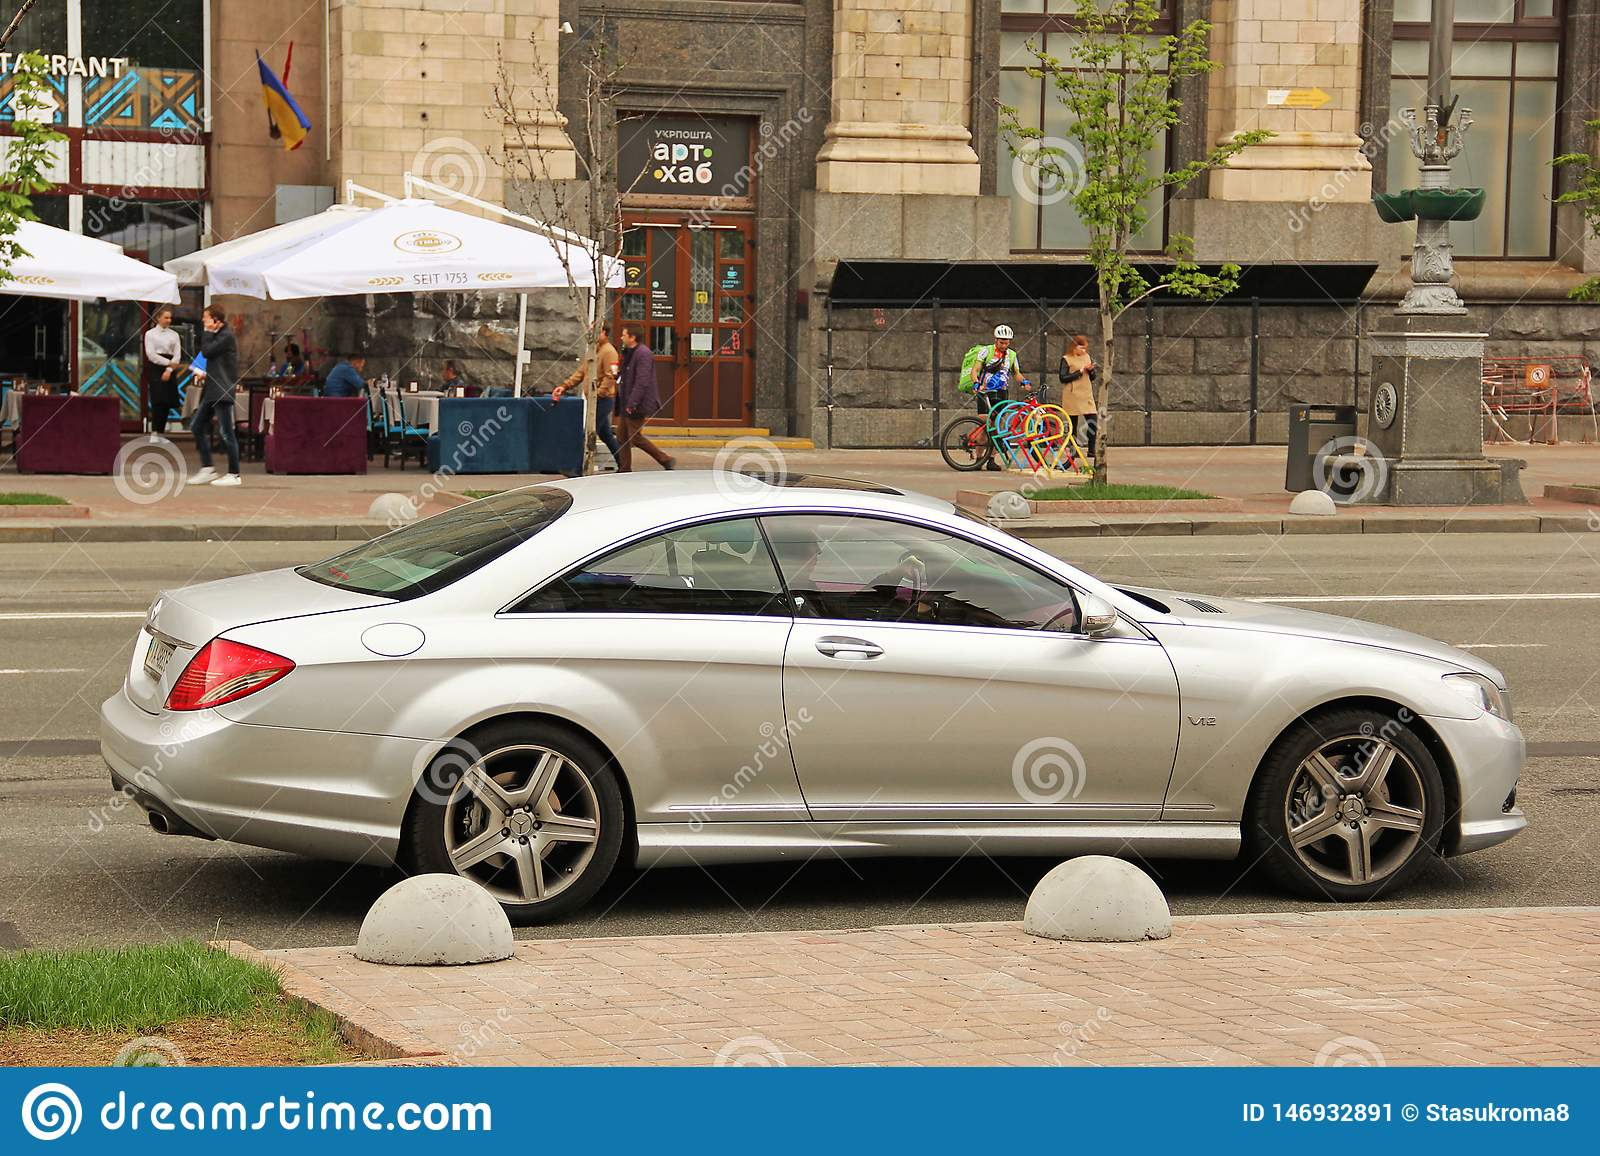 Kiev, Ukraine - May 3, 2019: Beautiful Mercedes CL in the city